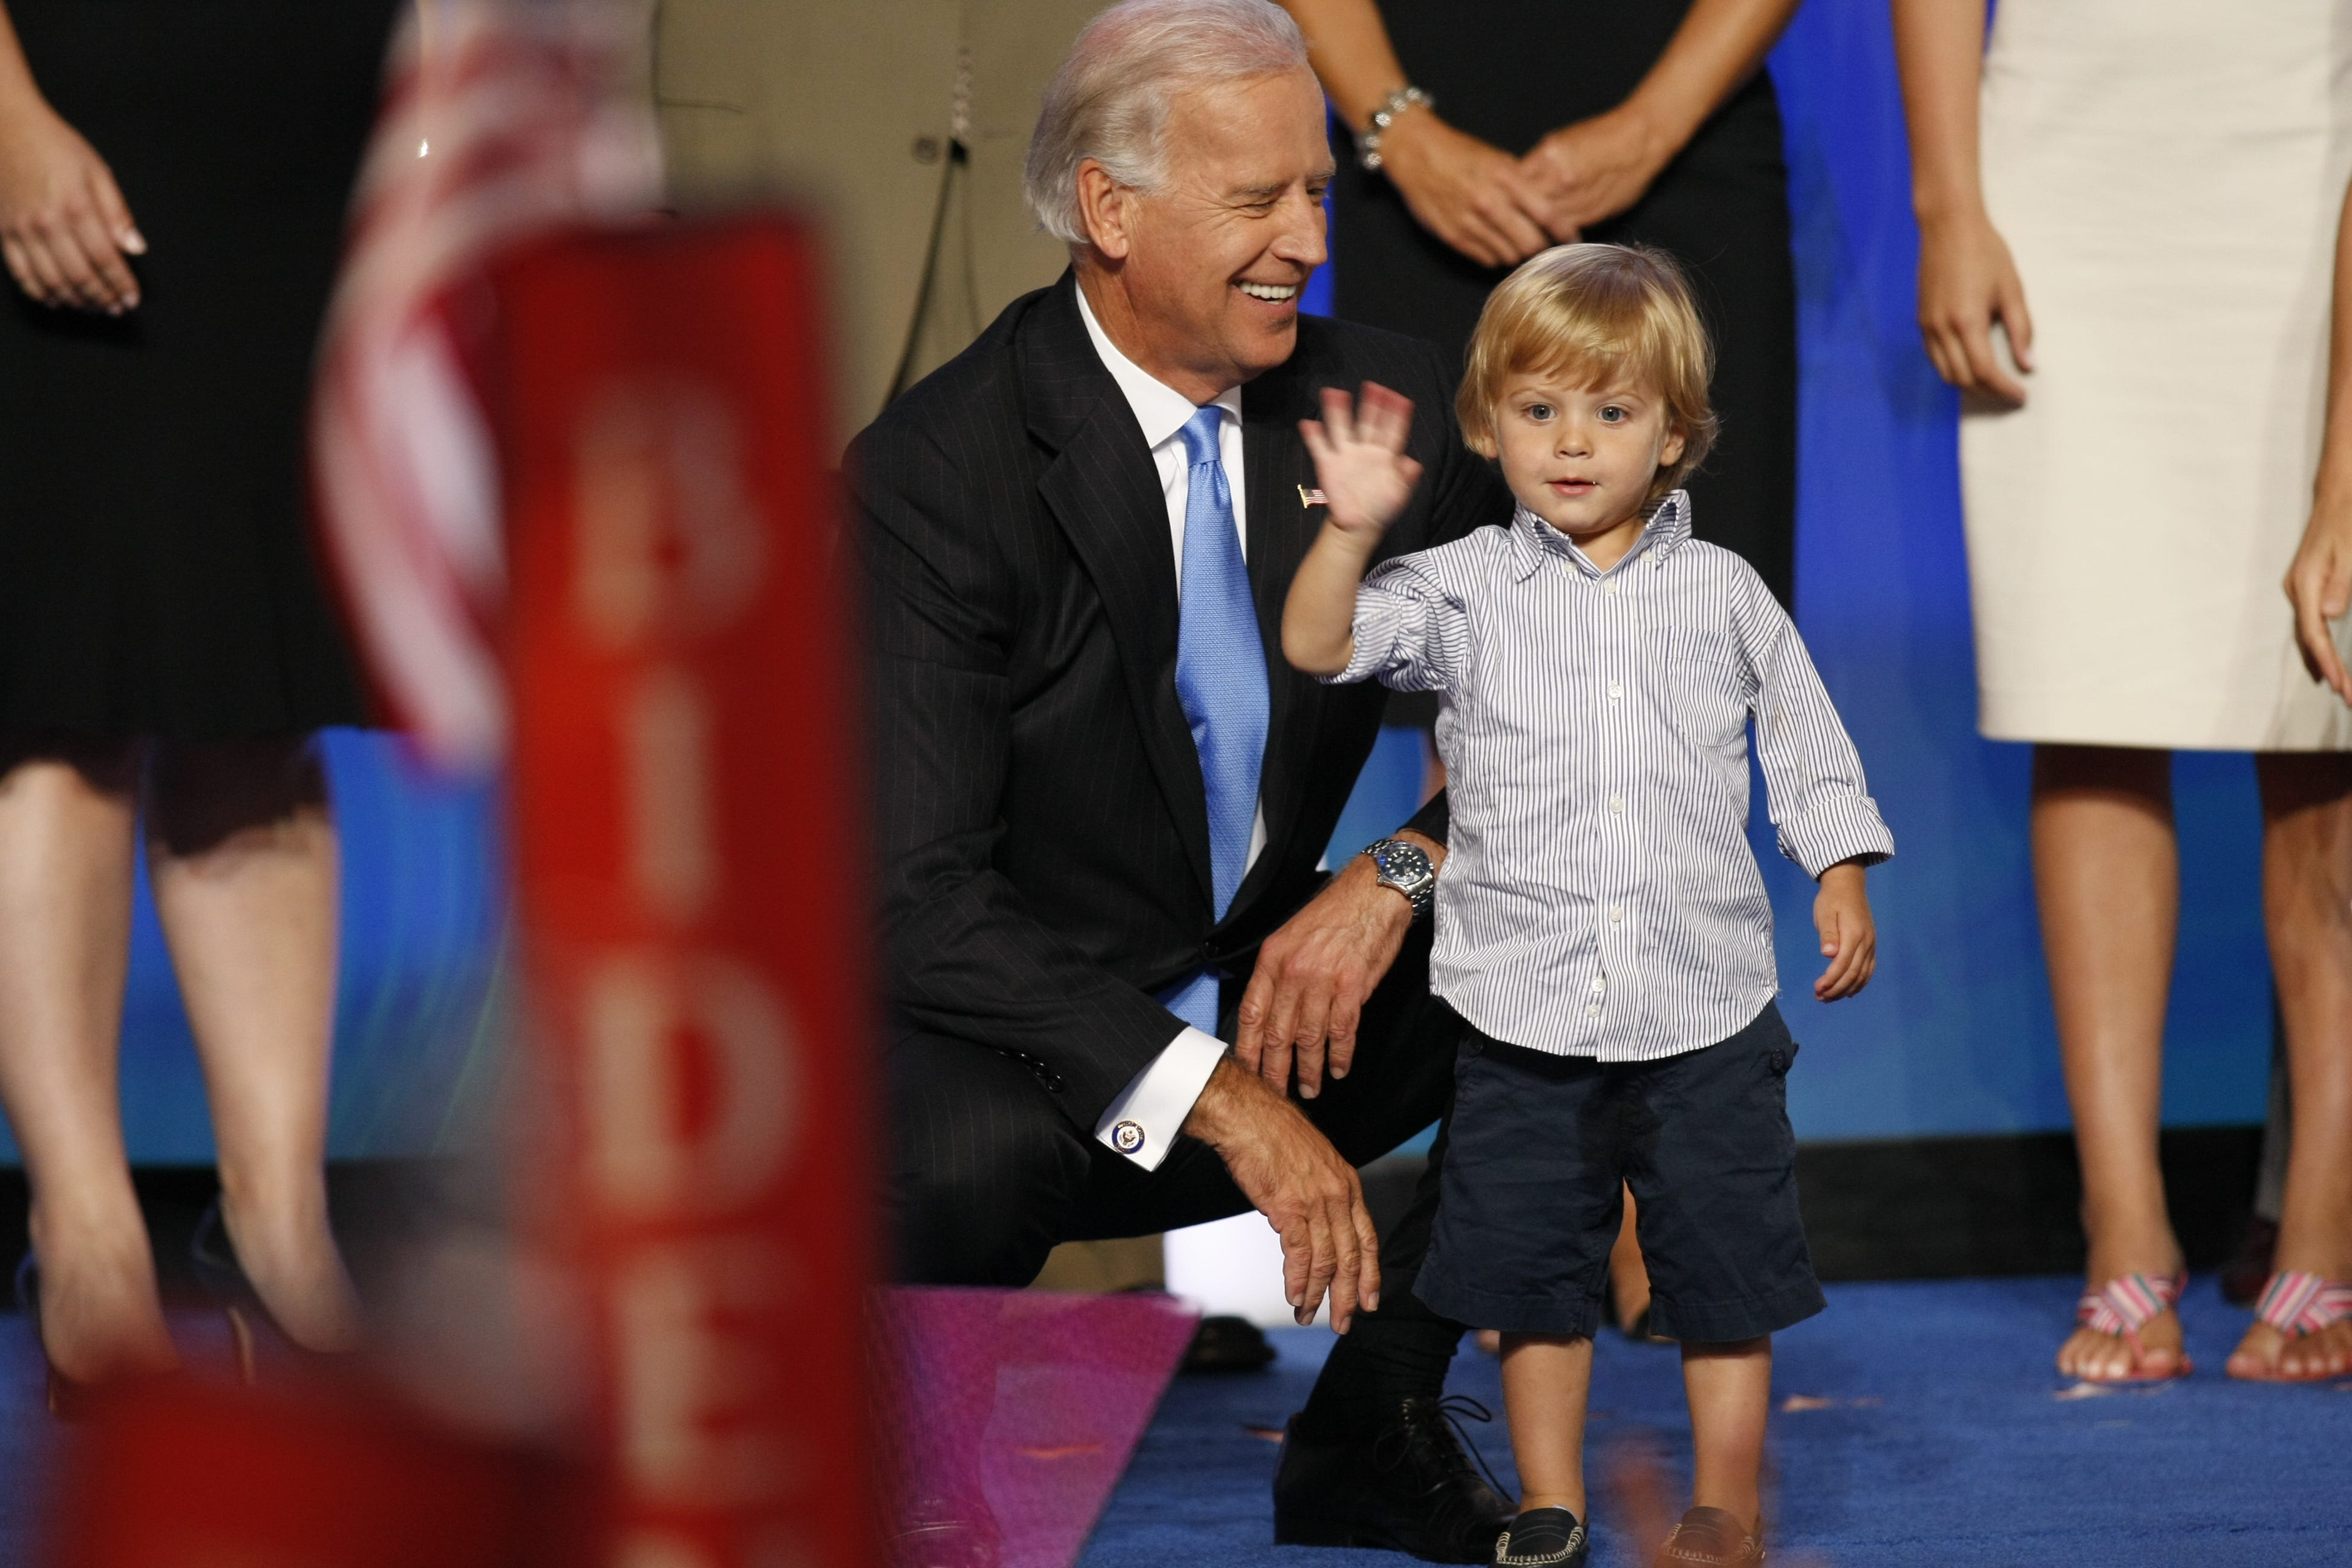 Then-Vice-Presidential nominee Joe Biden with his grandson Hunter and other family members after Biden's speech at the 2008 Democratic National Convention in Denver.